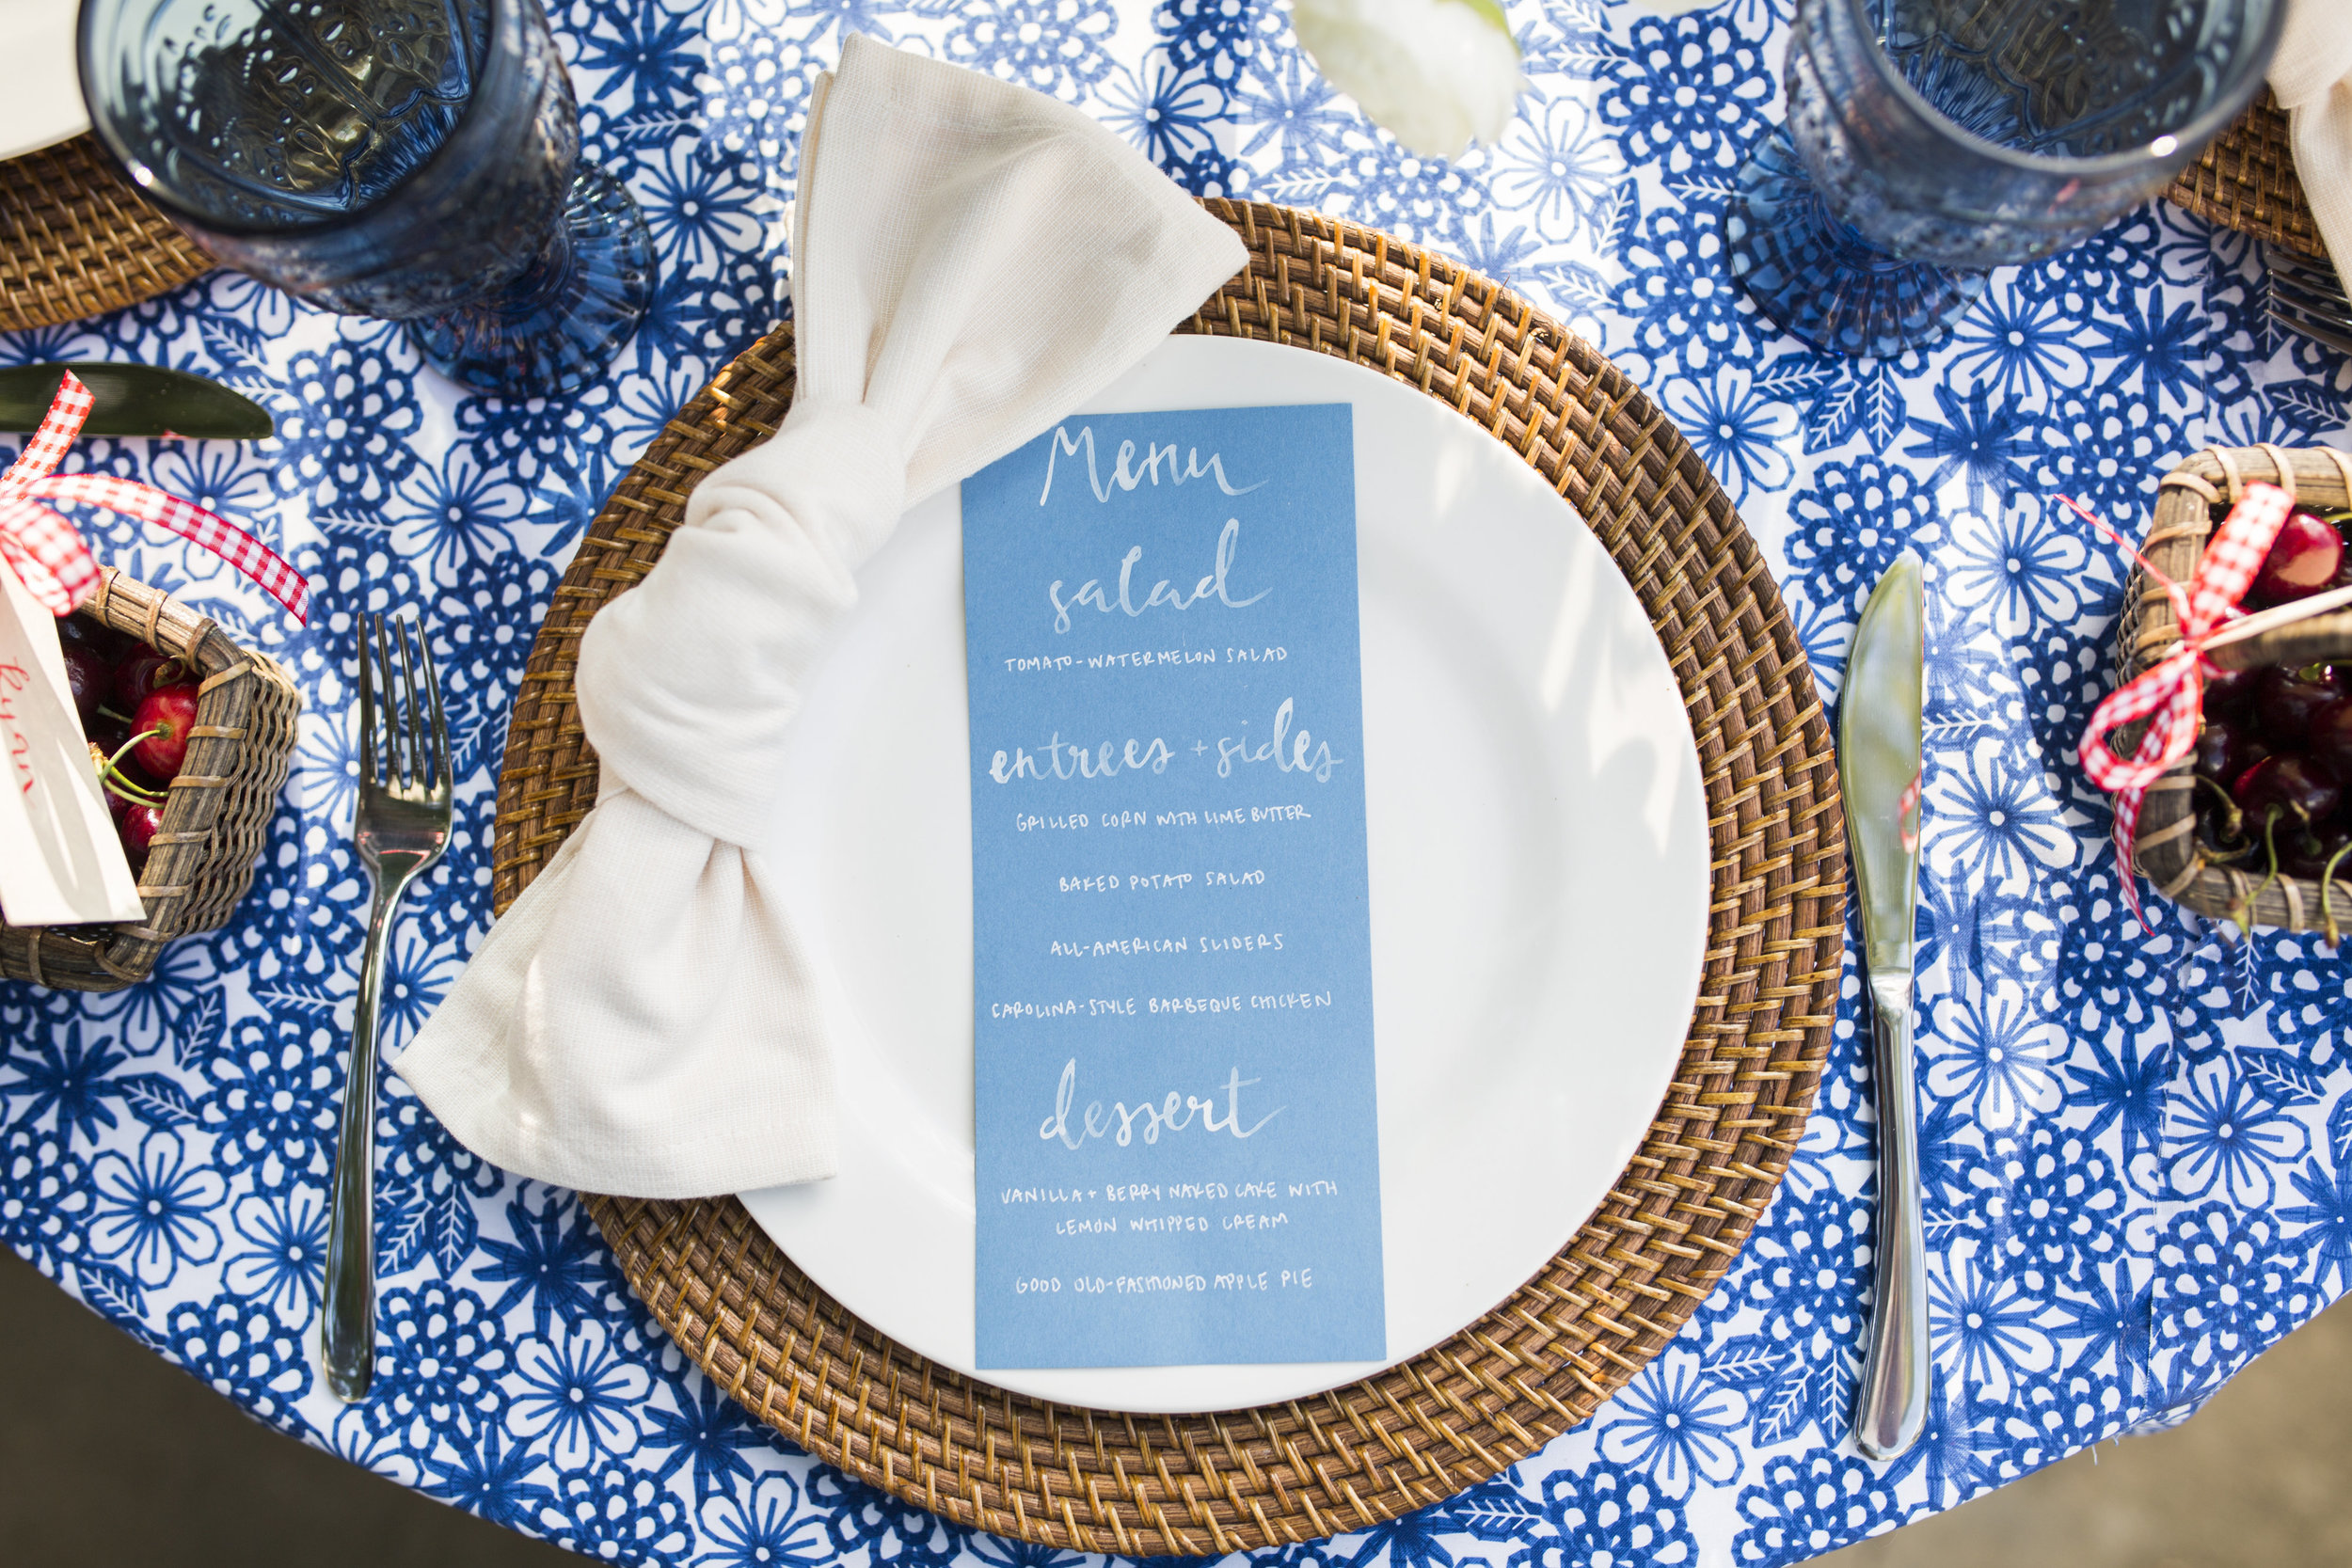 Stylish Fourth of July Party Ideas by Cassandra Clair of Event Prep